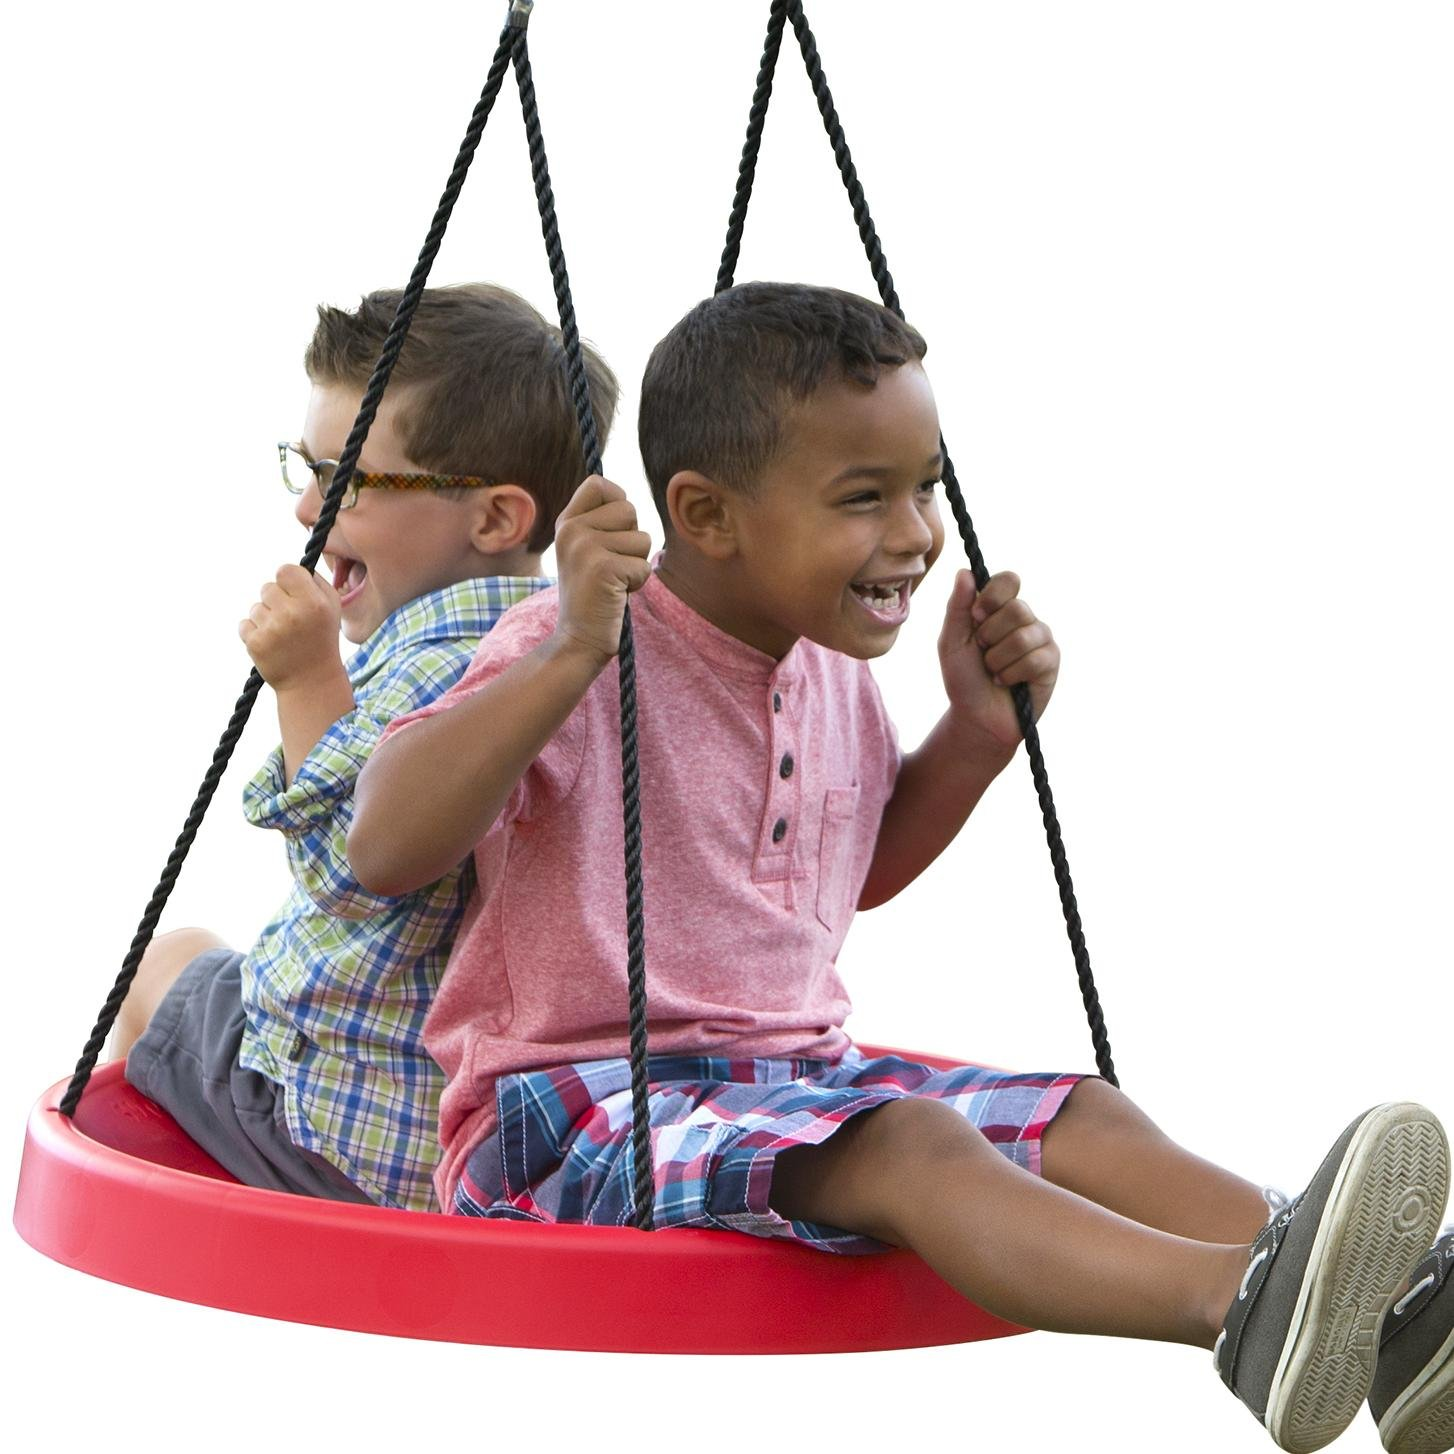 PlayMonster Swing Fun, Easy to Install Set Or Tree, Red, 27'' Super Spinner